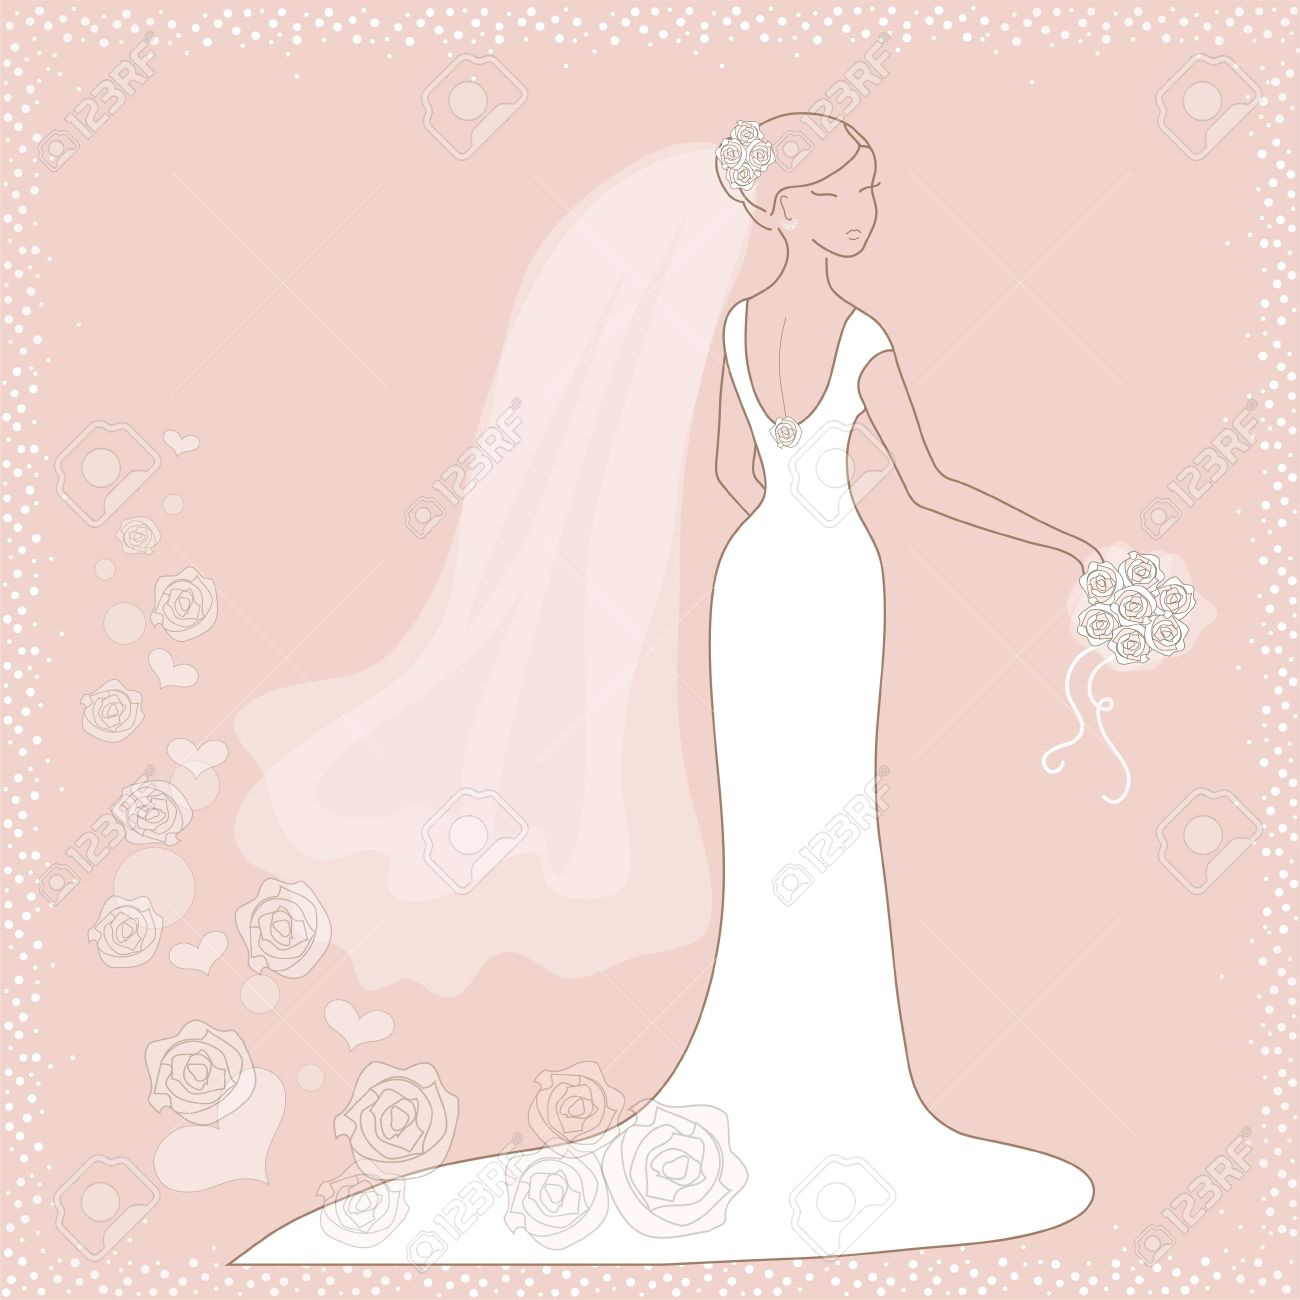 beautiful wedding card with bride on pink background stock vector 11450318